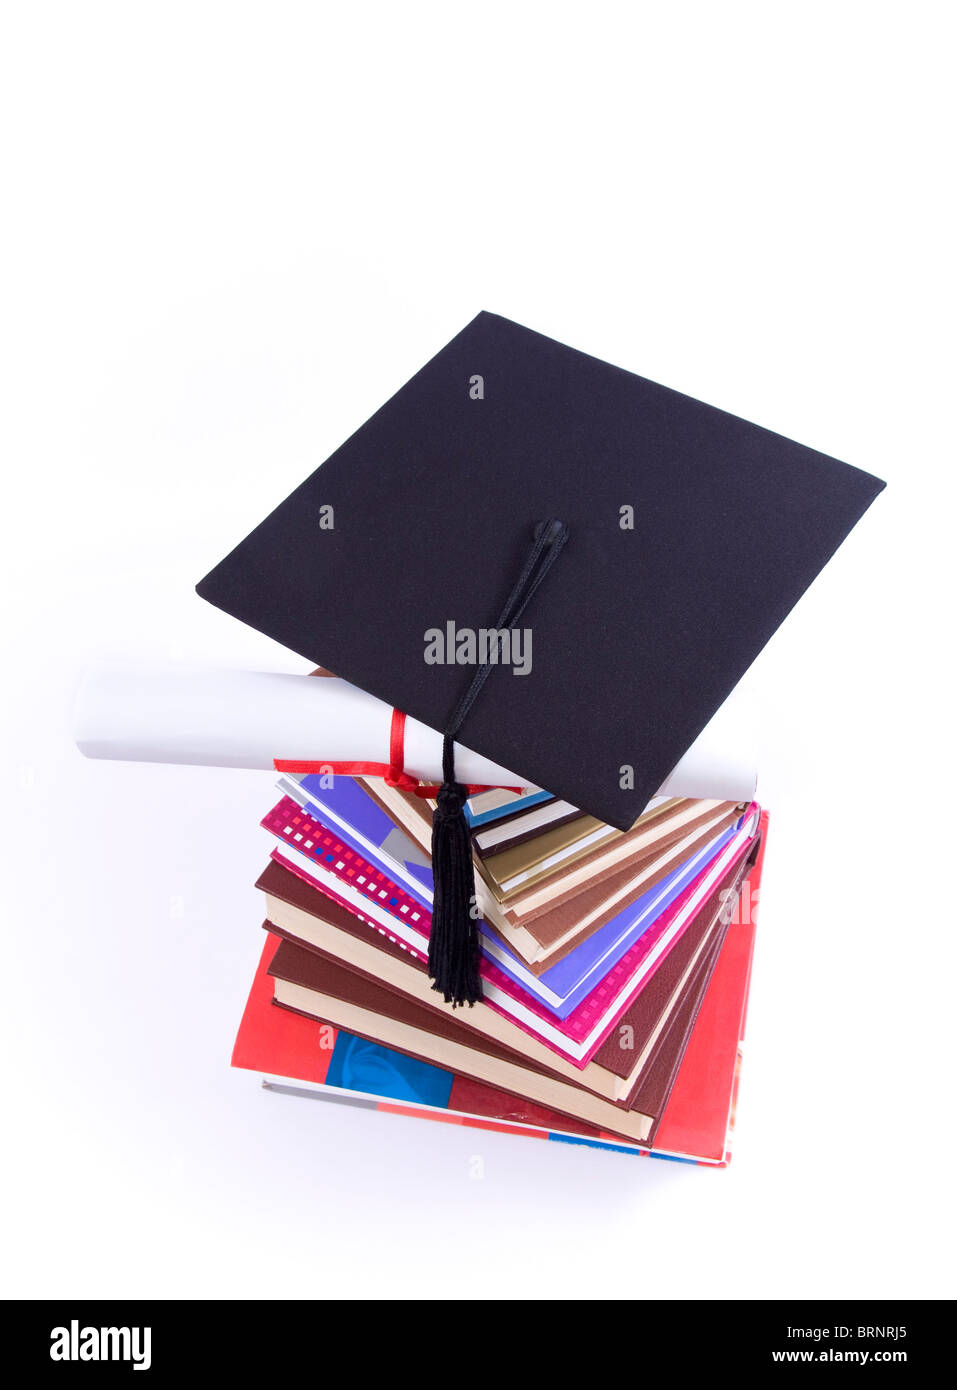 A lot of books, tower made of books with student hat and diploma, against a white background - Stock Image